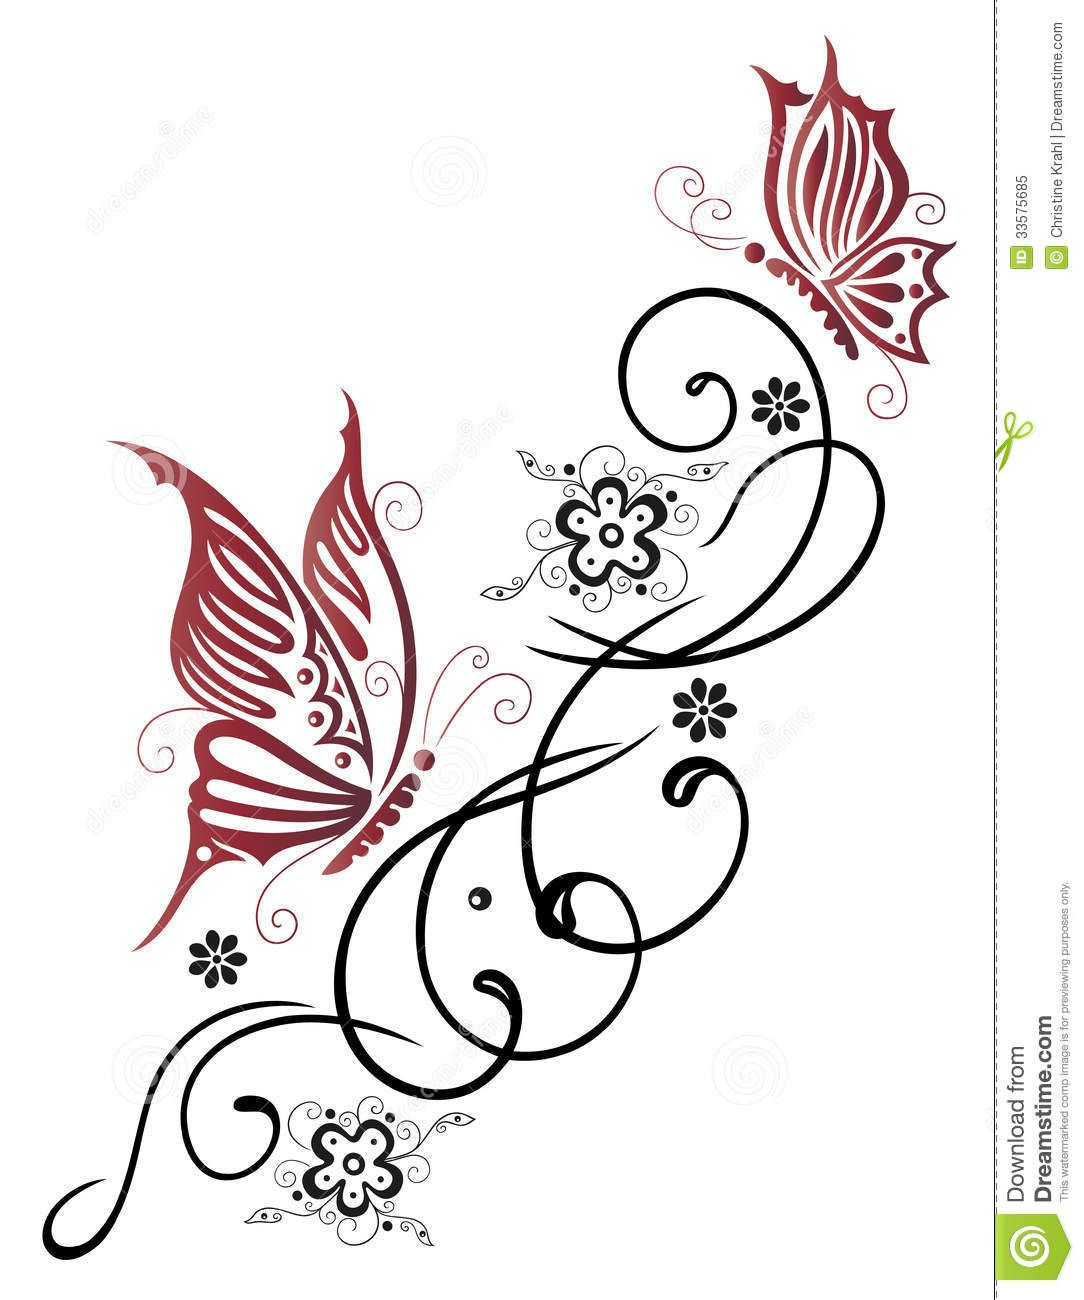 Flowers Butterfly Tendril Royalty Free Stock Photo